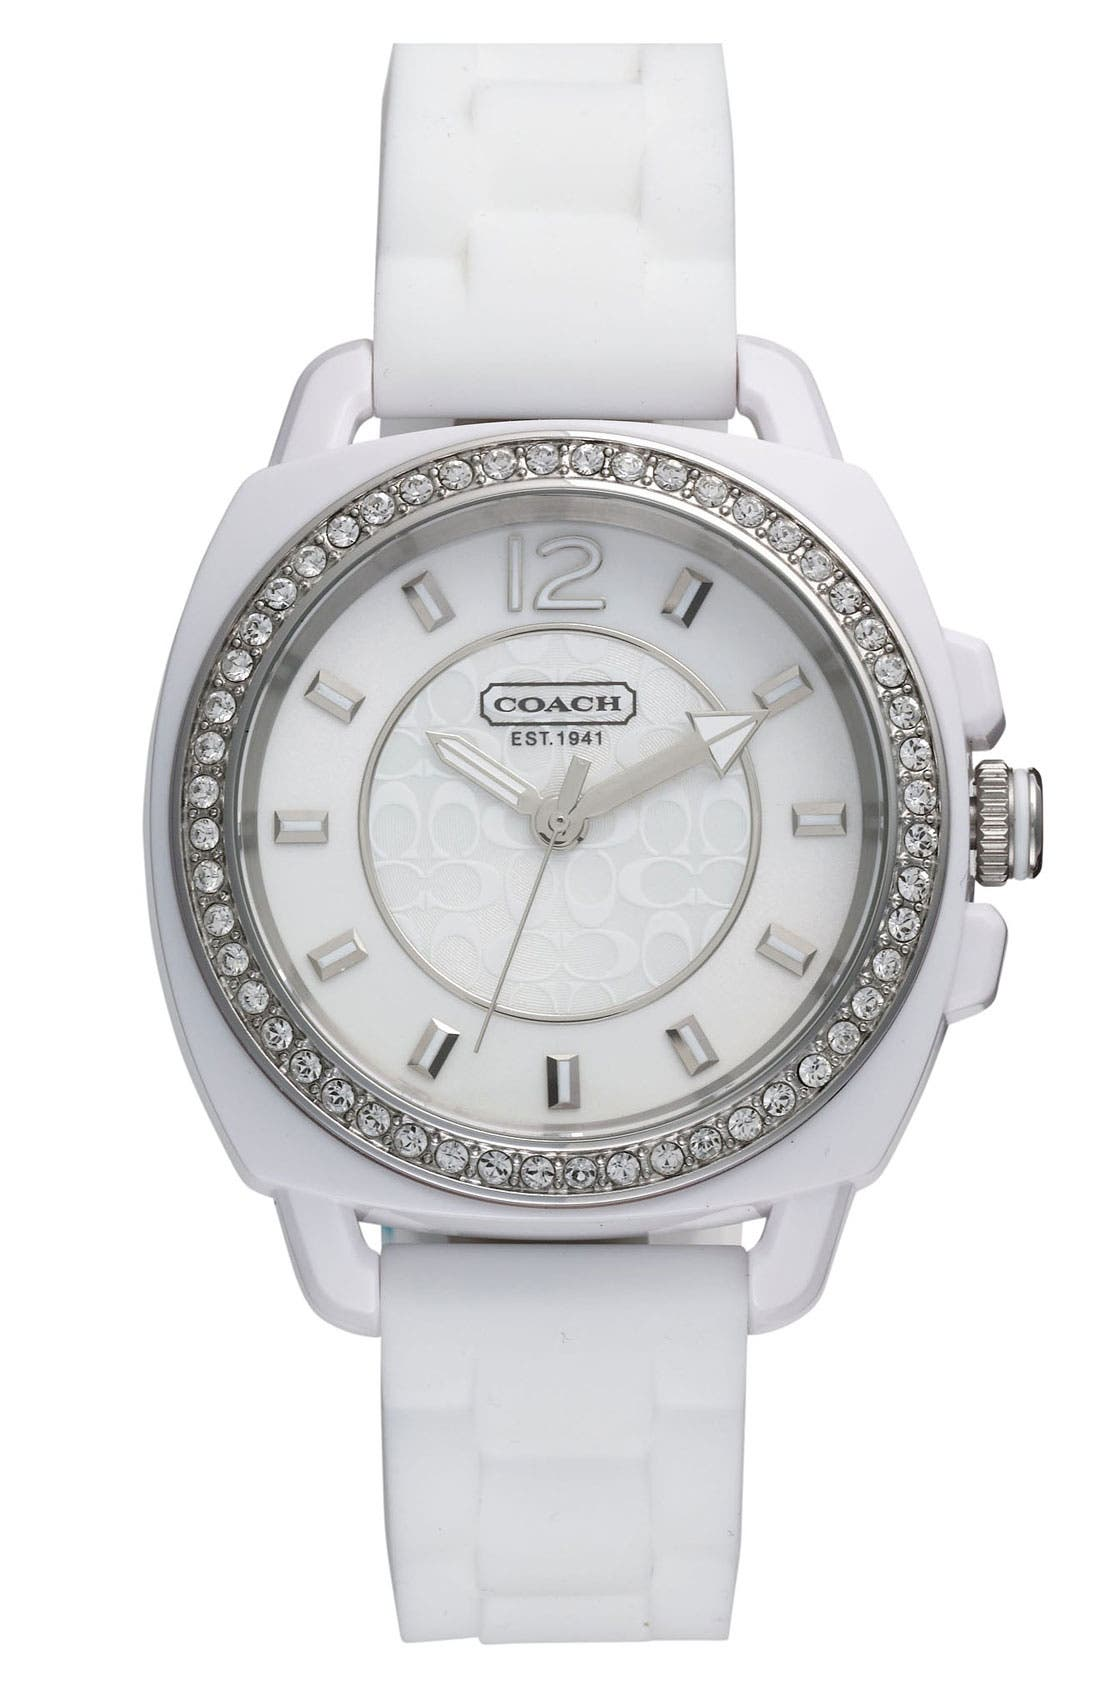 Main Image - COACH 'Boyfriend' Crystal Bezel Watch, 39mm